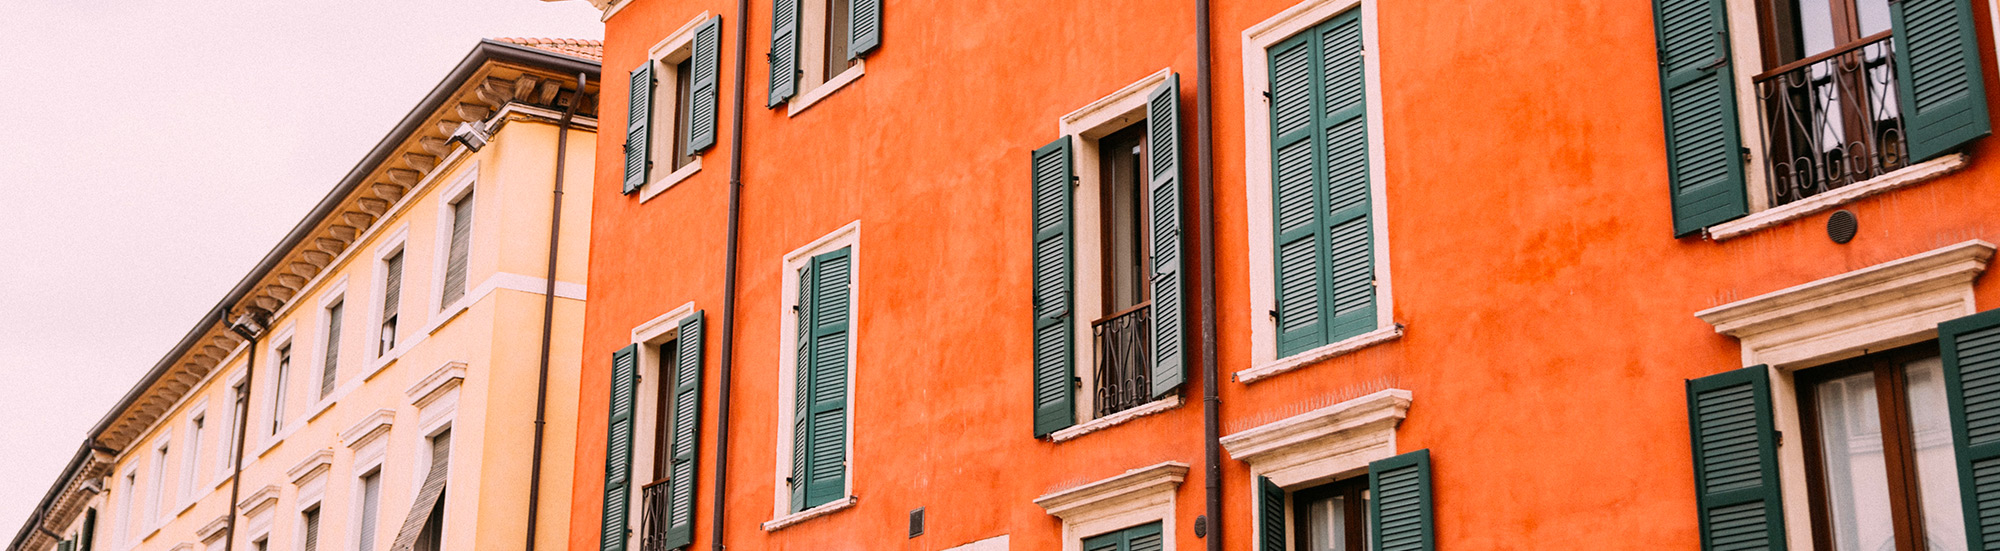 buying property in italy mortgage